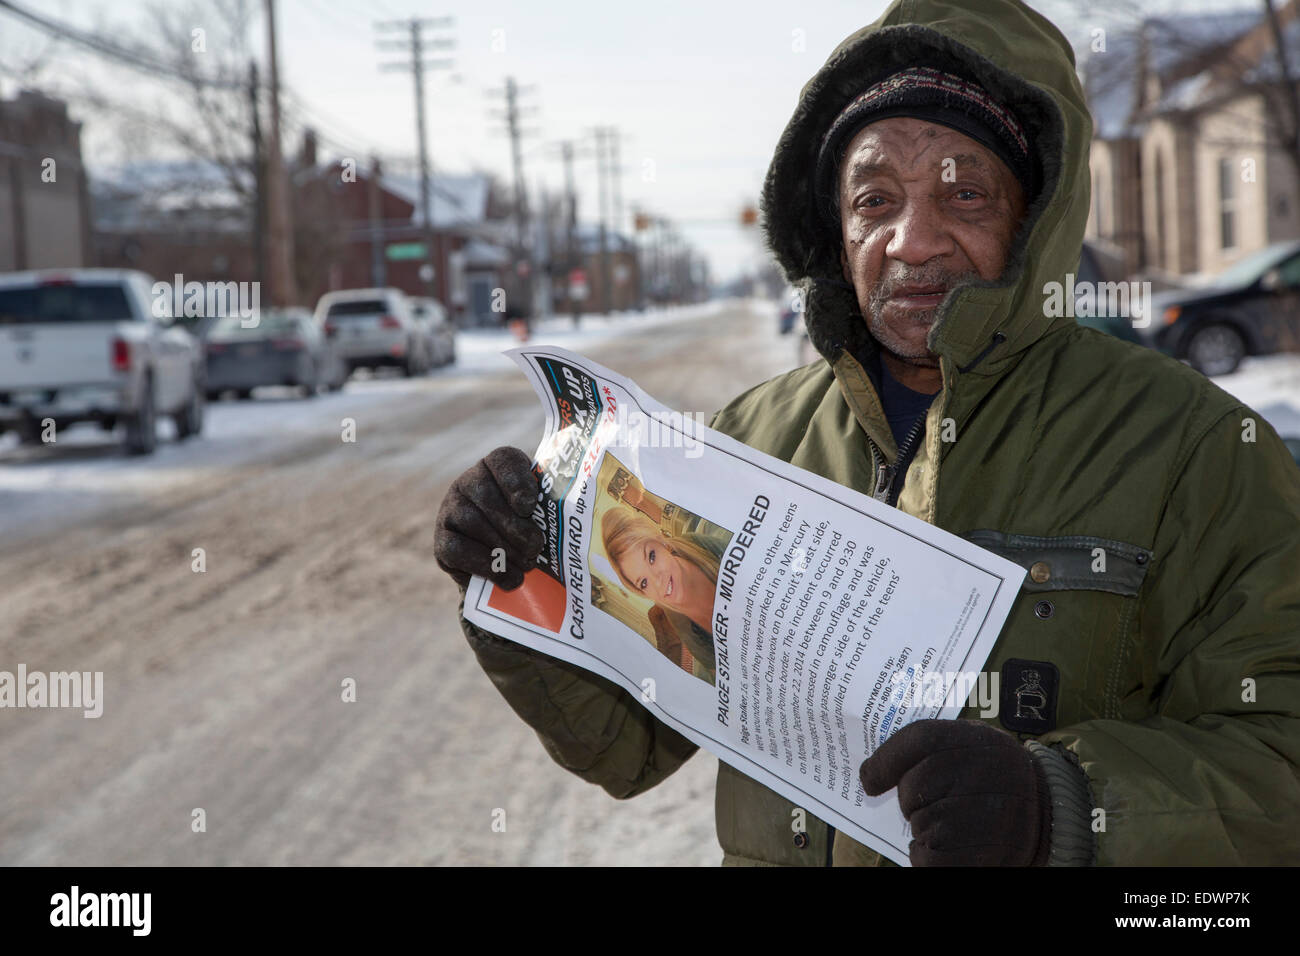 Detroit, Michigan, USA. 10th January, 2015. Family, friends, and community members gathered to pray on a Detroit - Stock Image